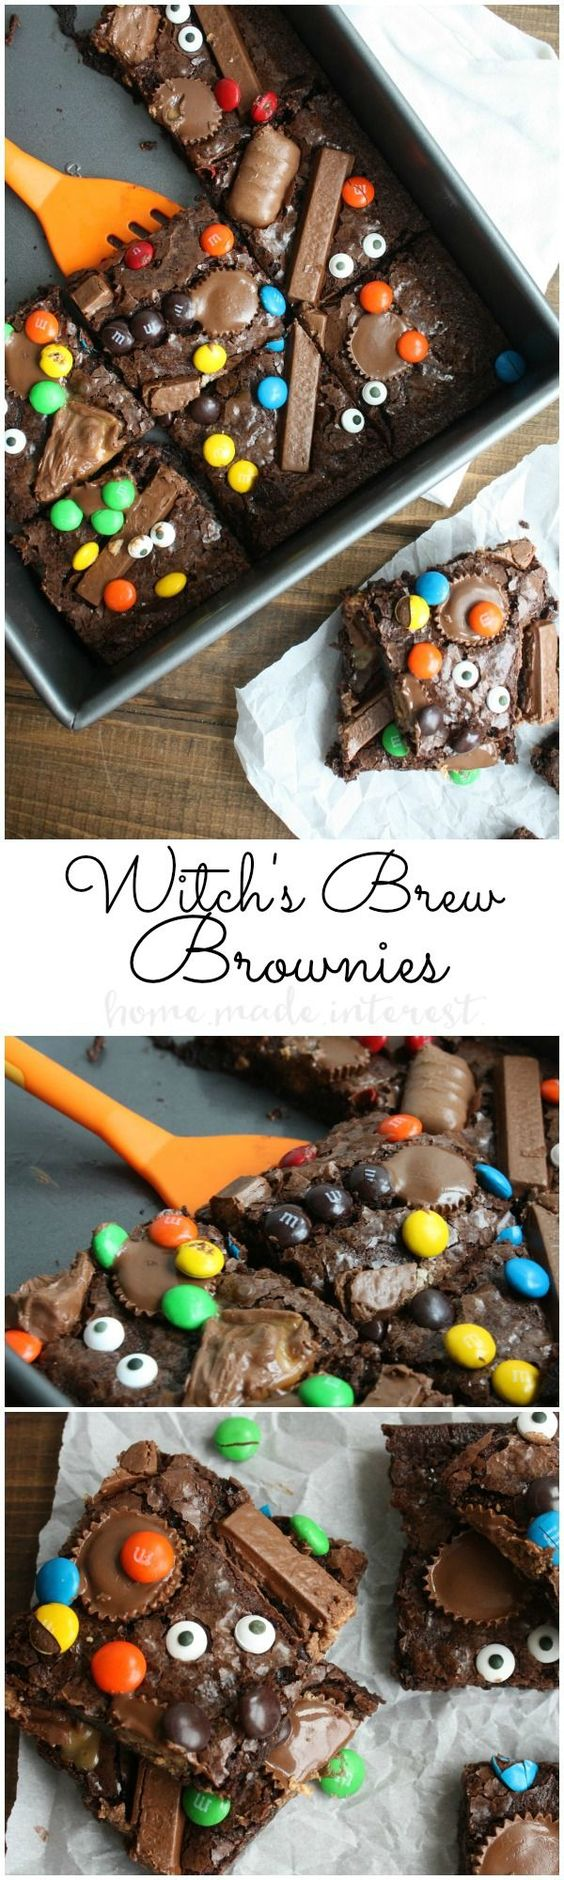 Witch's Brew Brownies Halloween Food Tutorial - Spiros